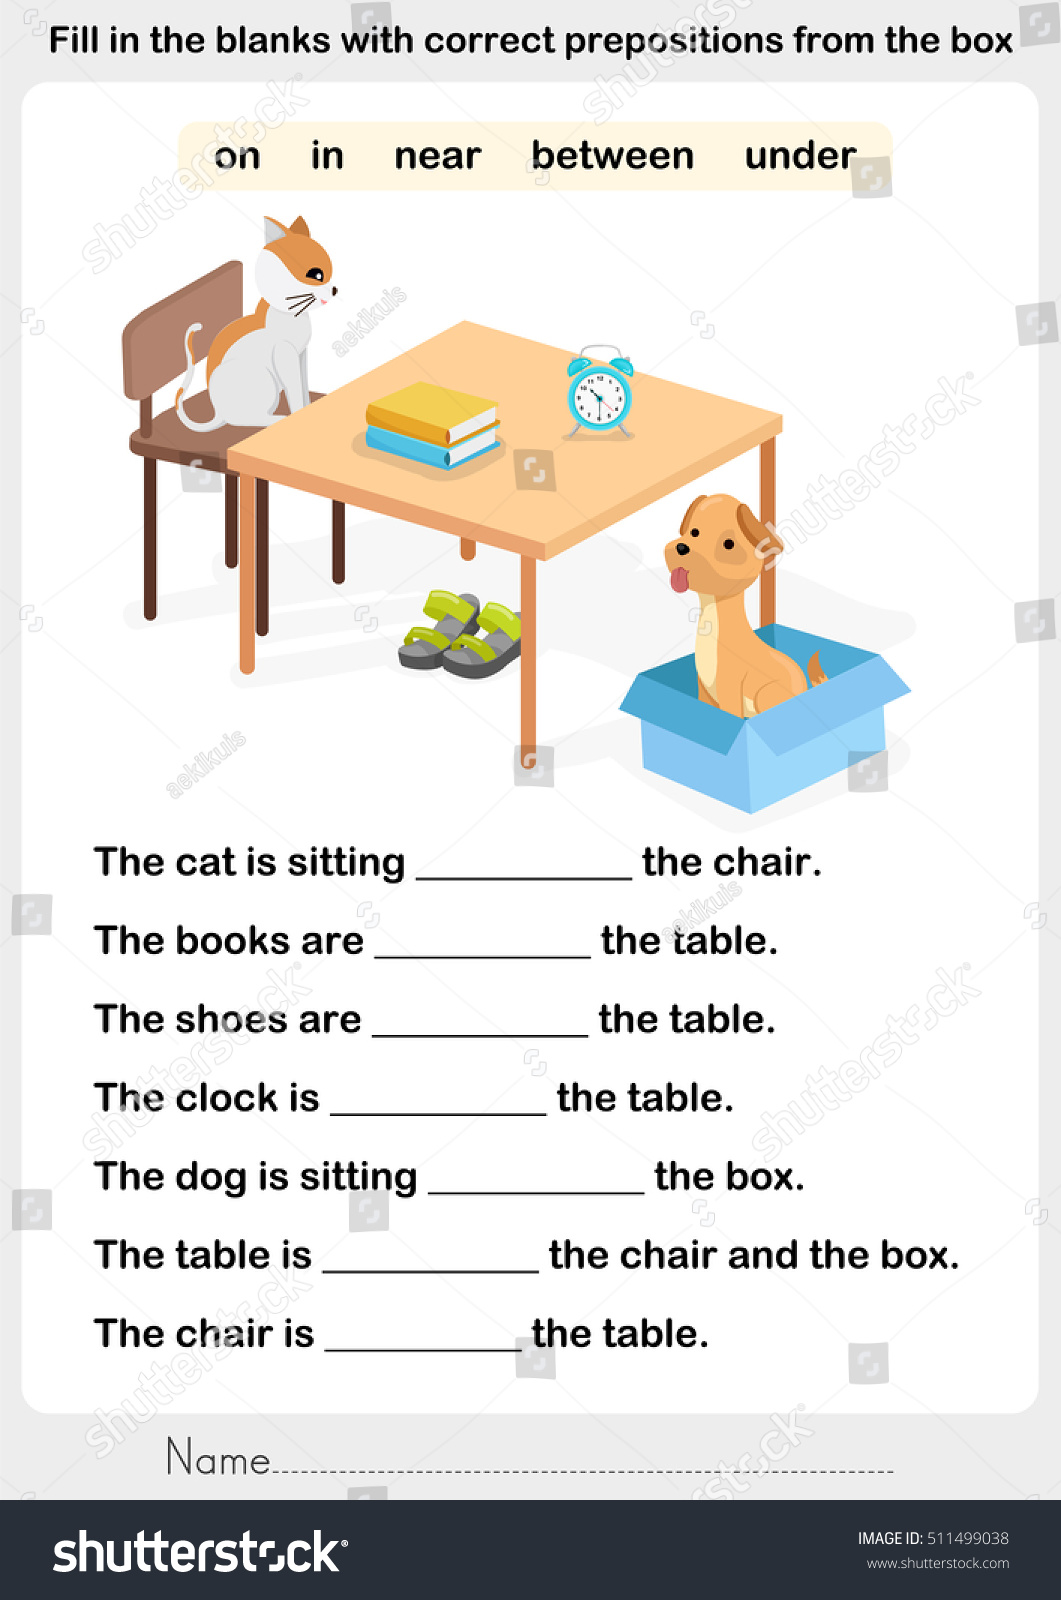 Preposition Worksheet With Answers